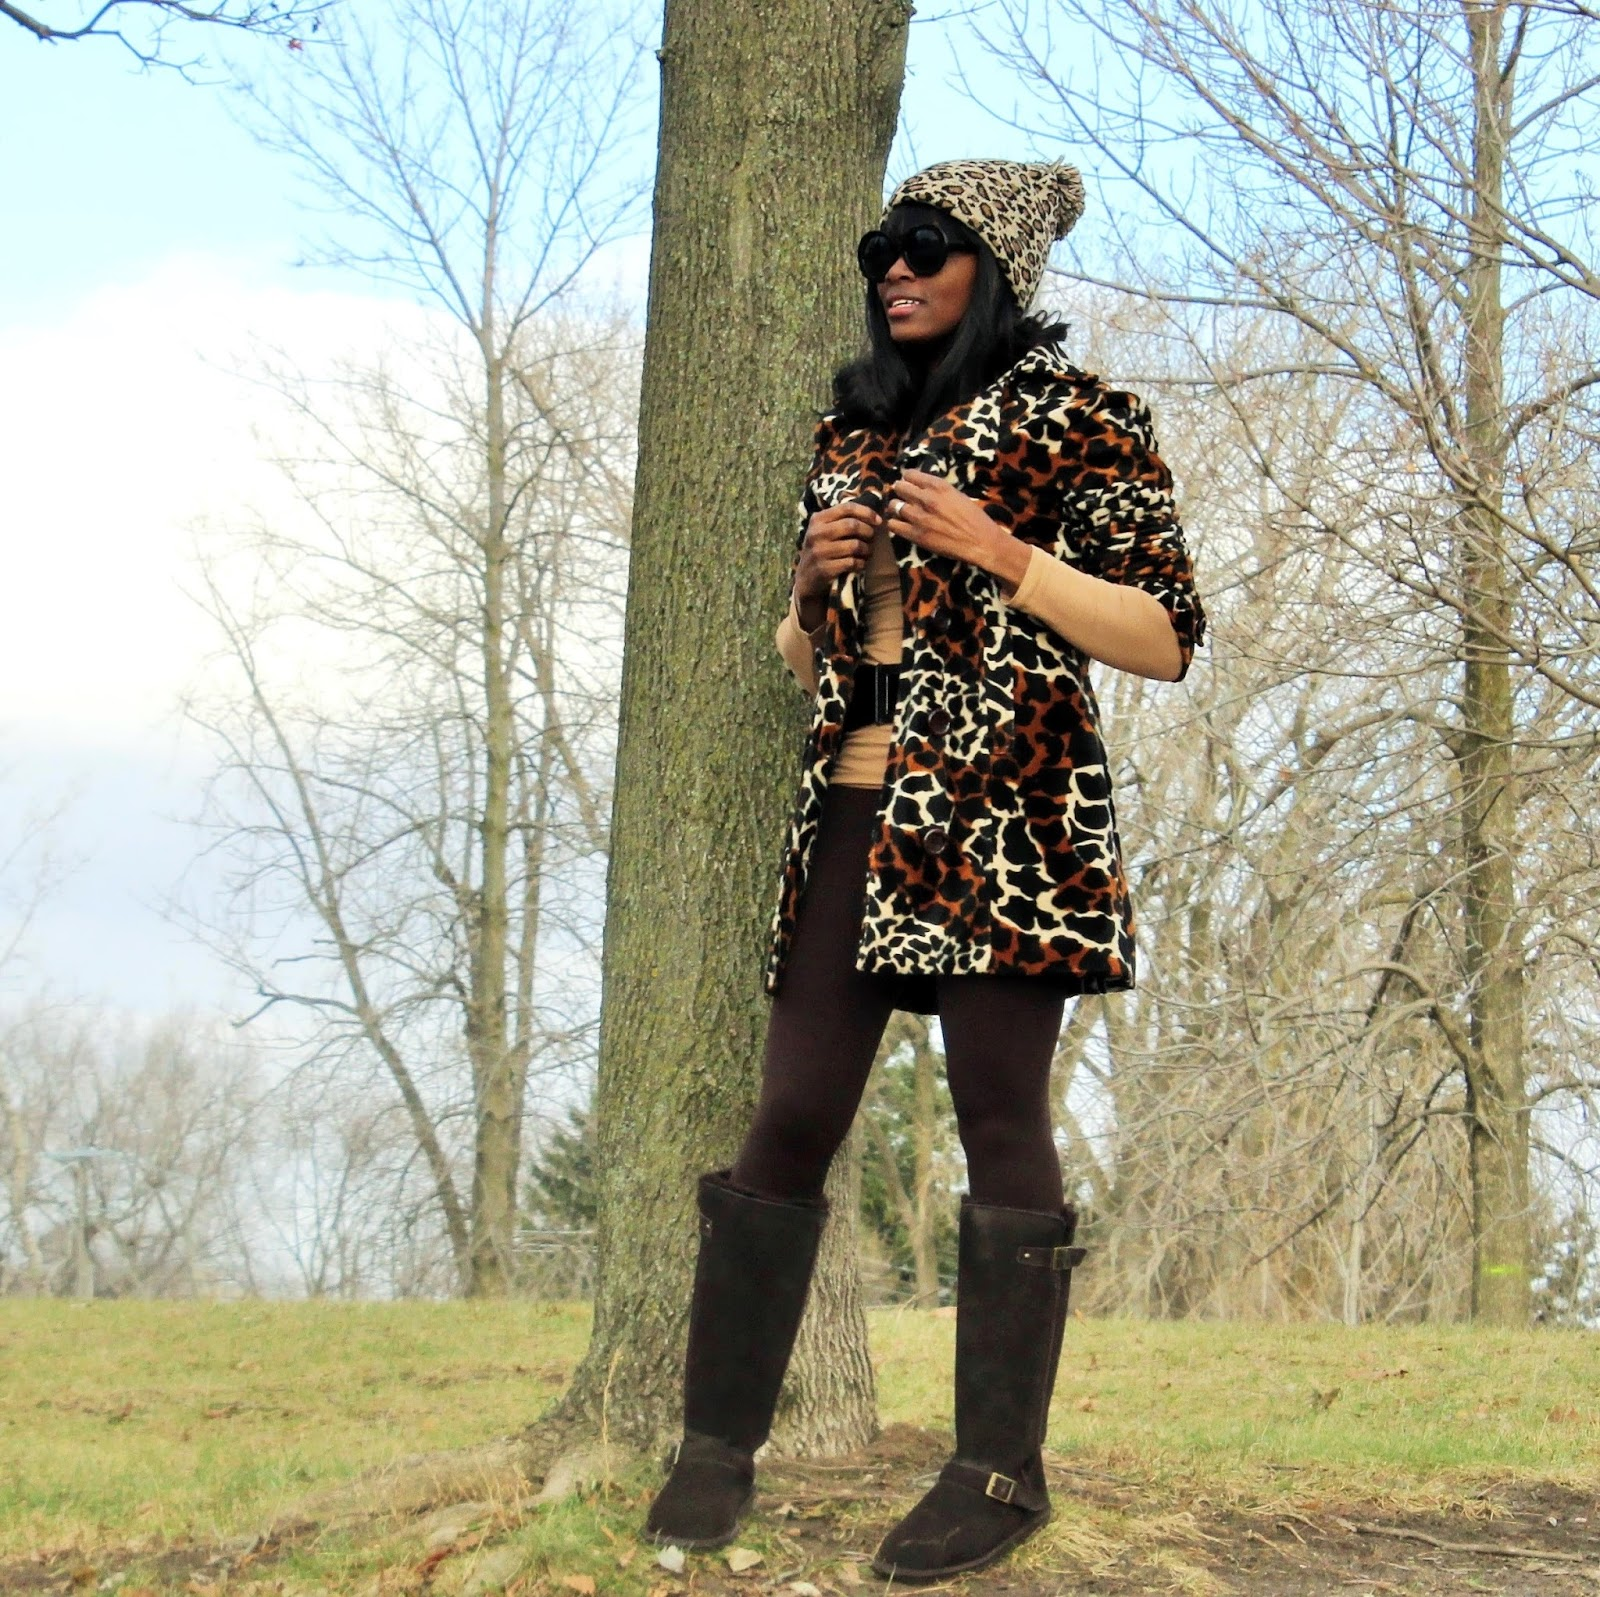 BLACK FRIDAY INSPIRED MY OUTFIT FEATURING BEARPAW JOHANNA WINTER BOOTS